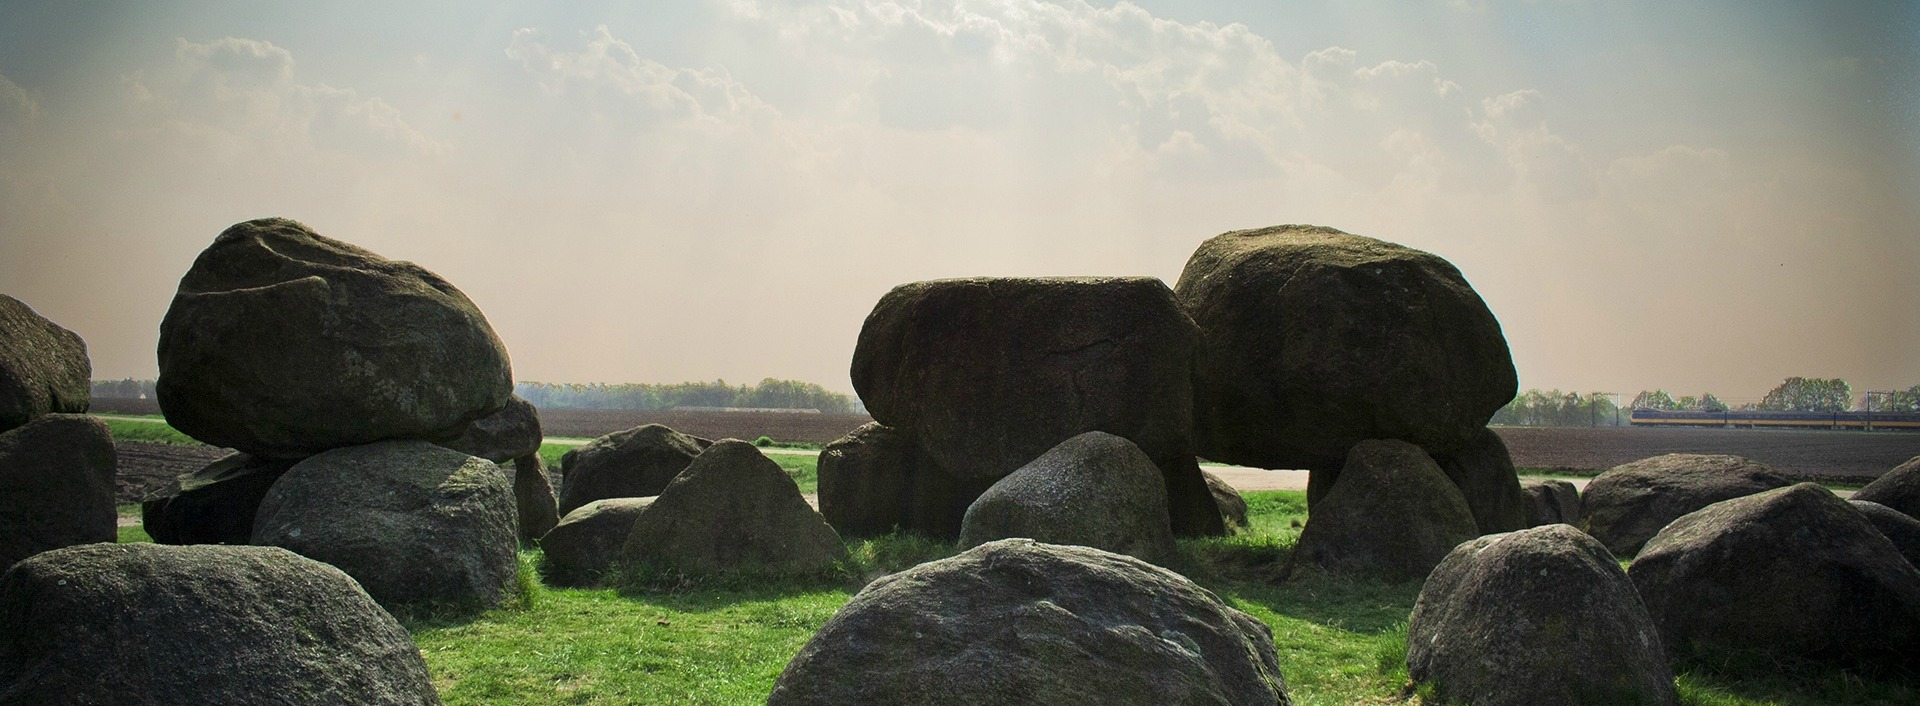 "English Homophones: Large boulders not ""bolder"" in a field."